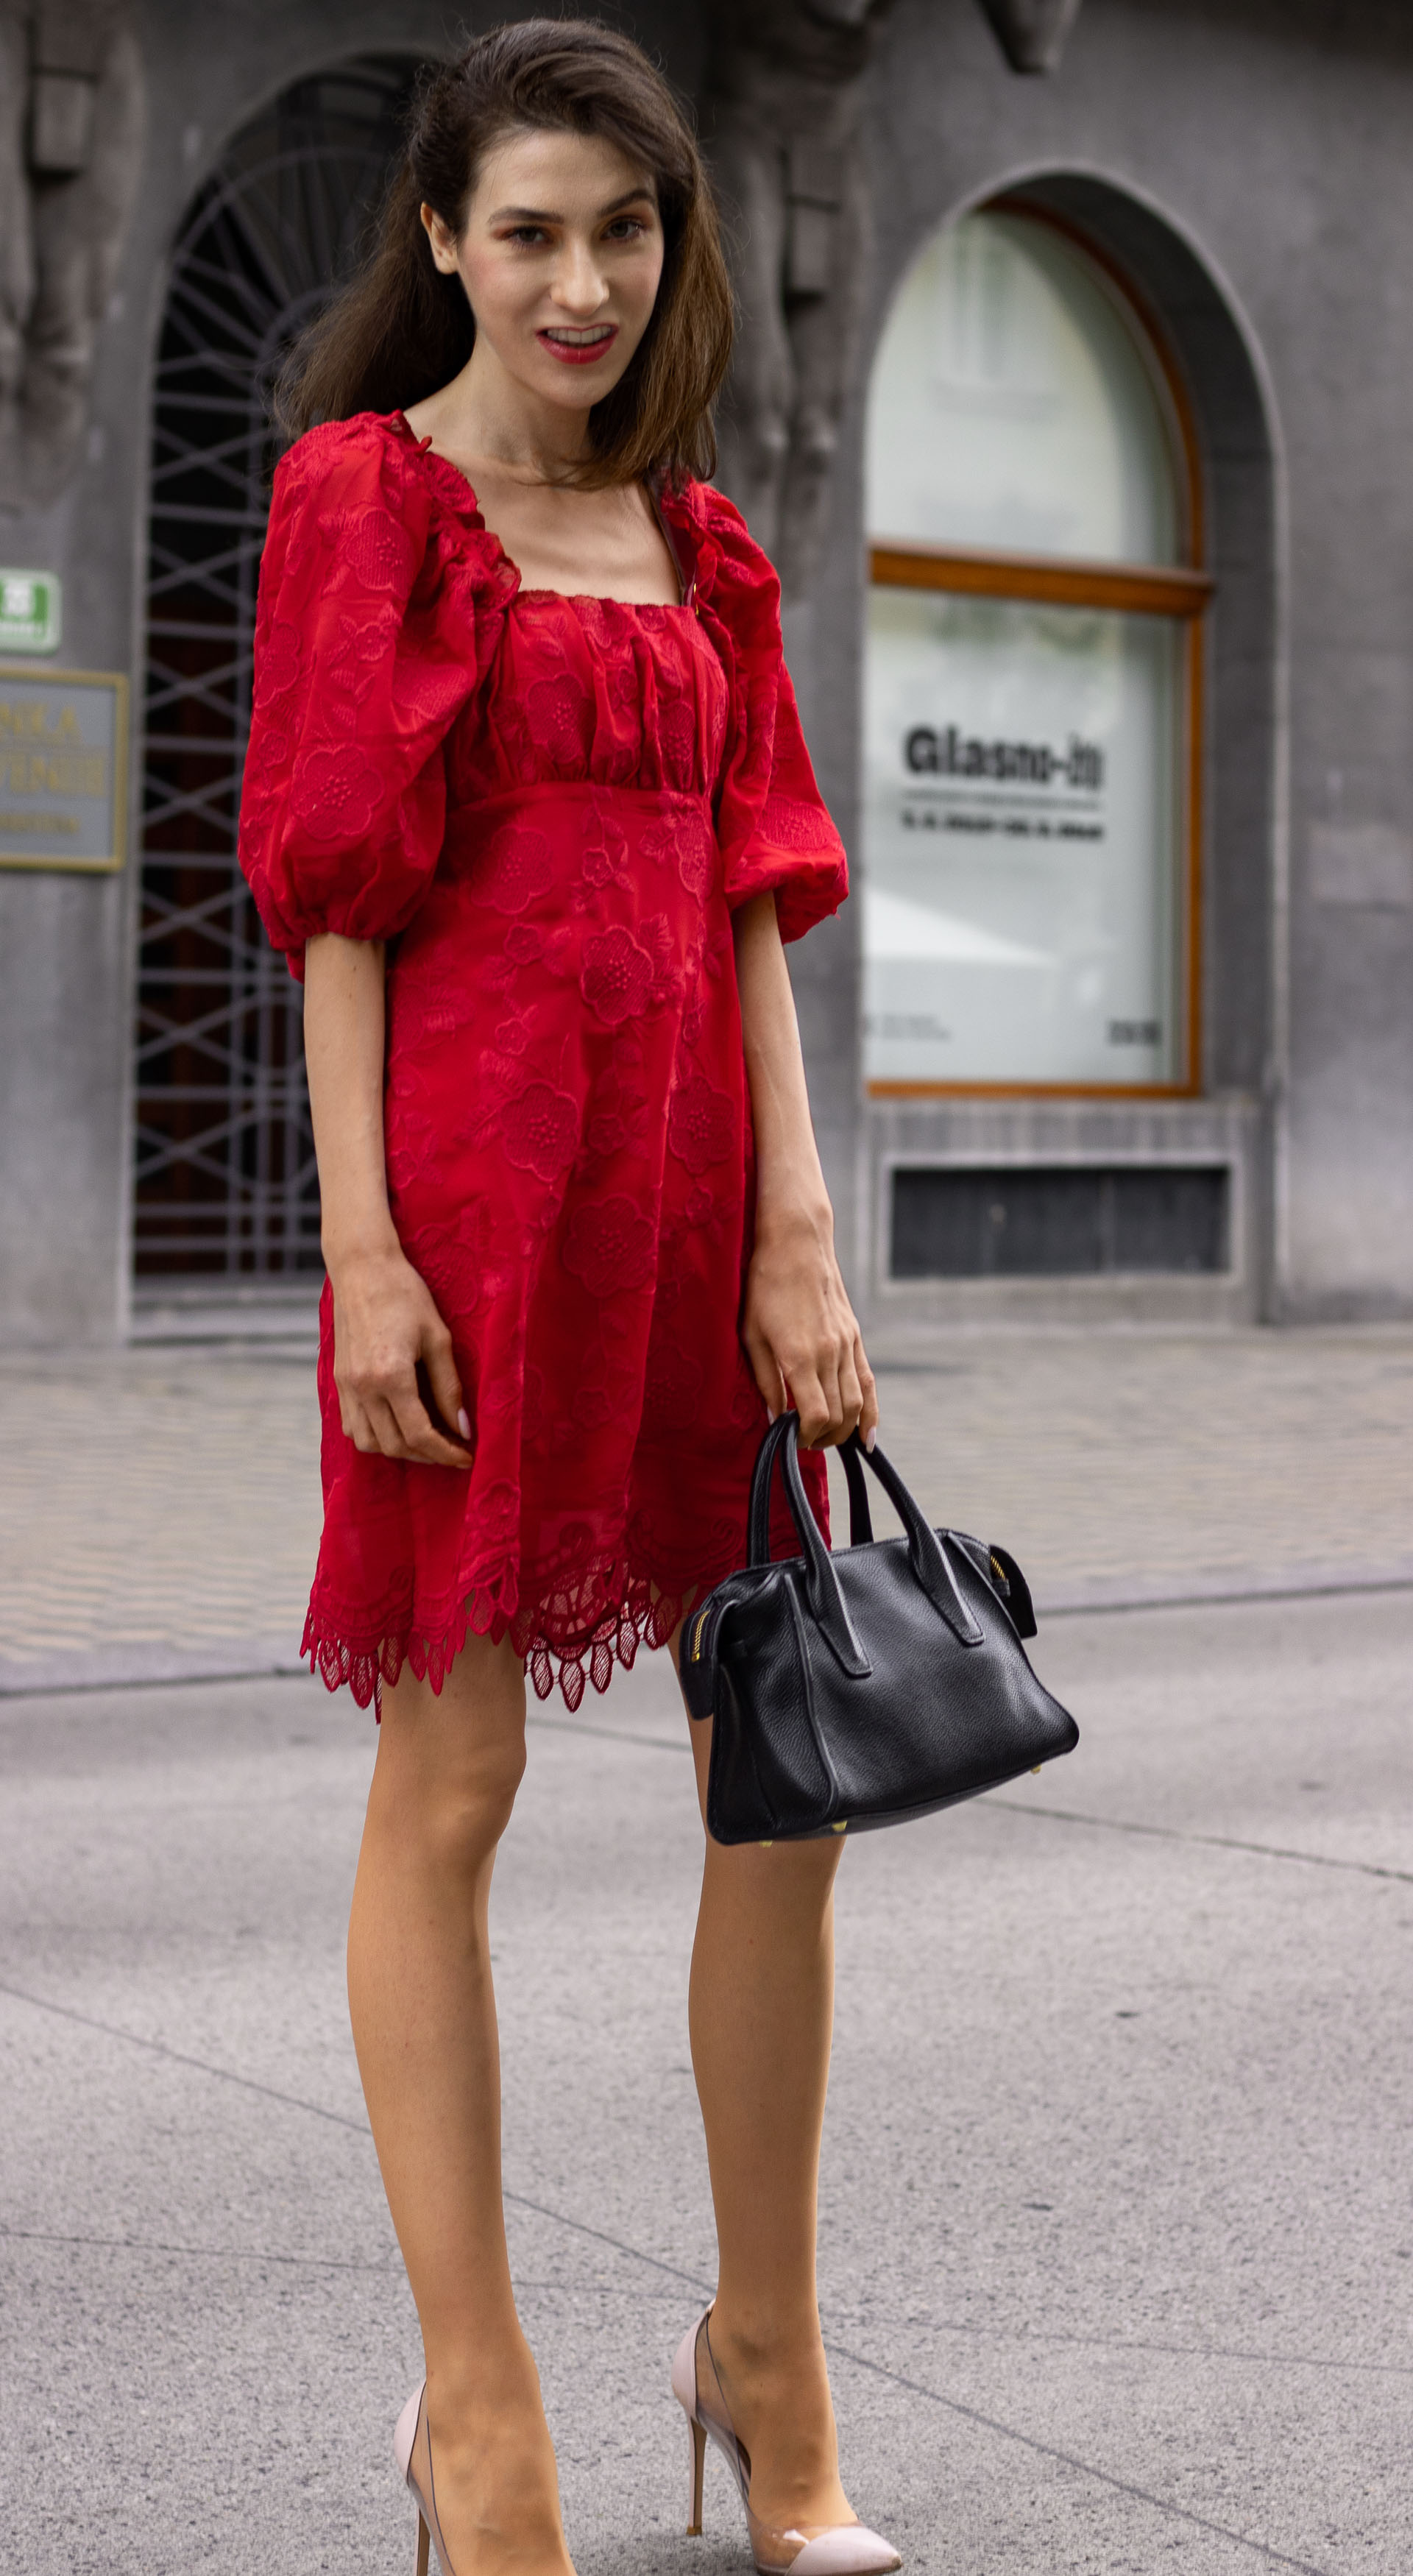 Brunette from Wall Street how to wear red dress plexi pumps for work